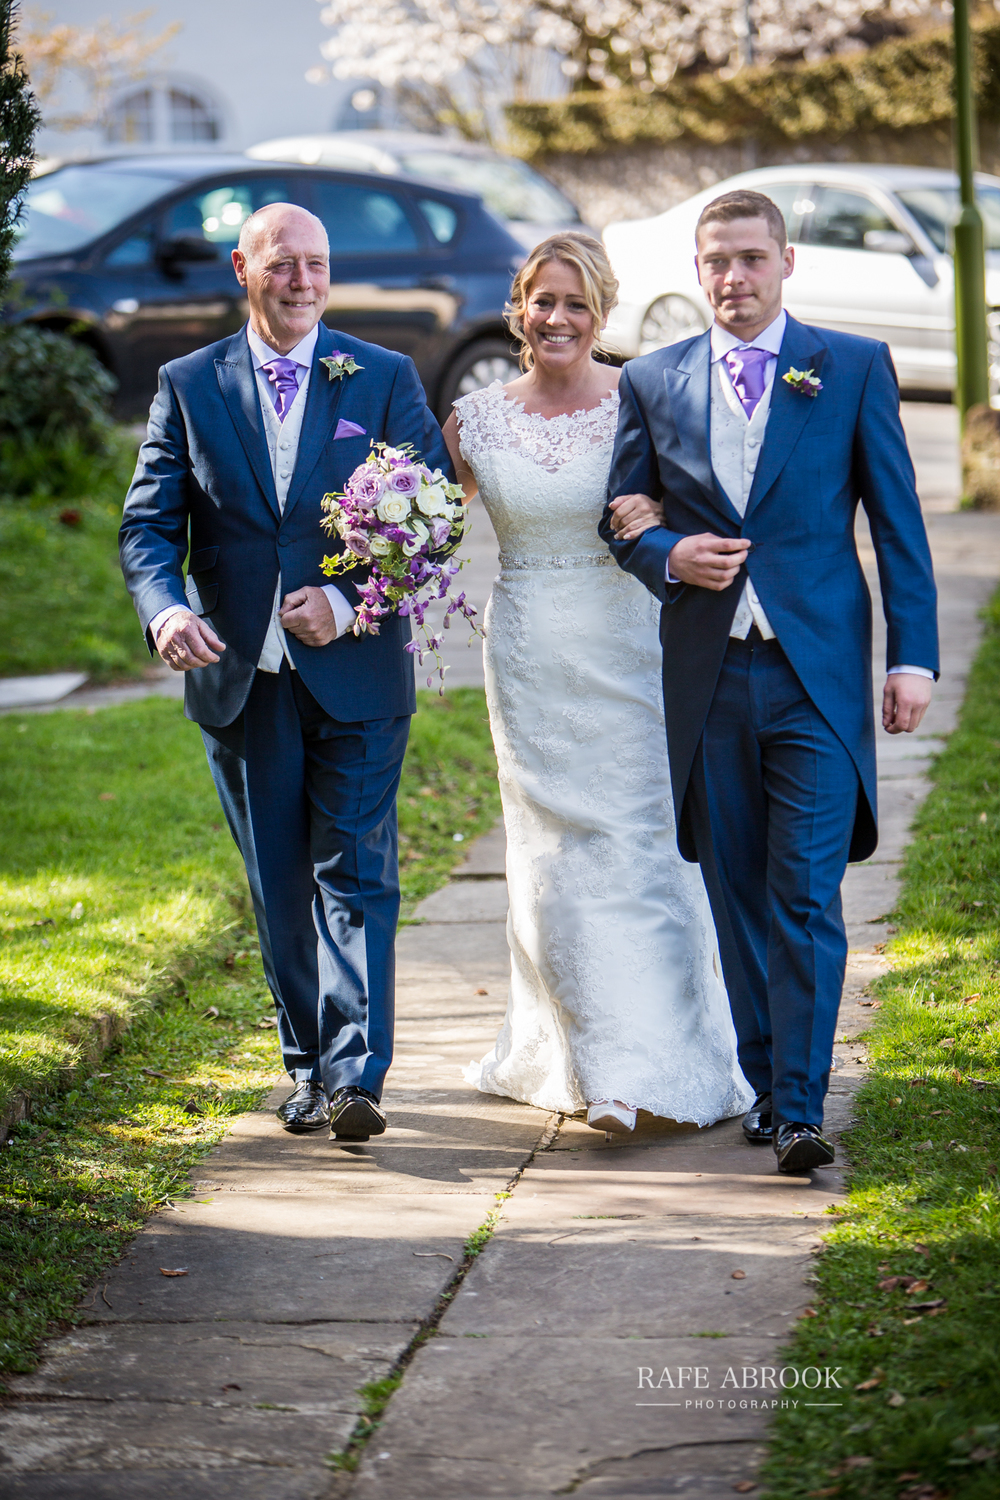 louise & john wedding all saints church kings langley-600.jpg